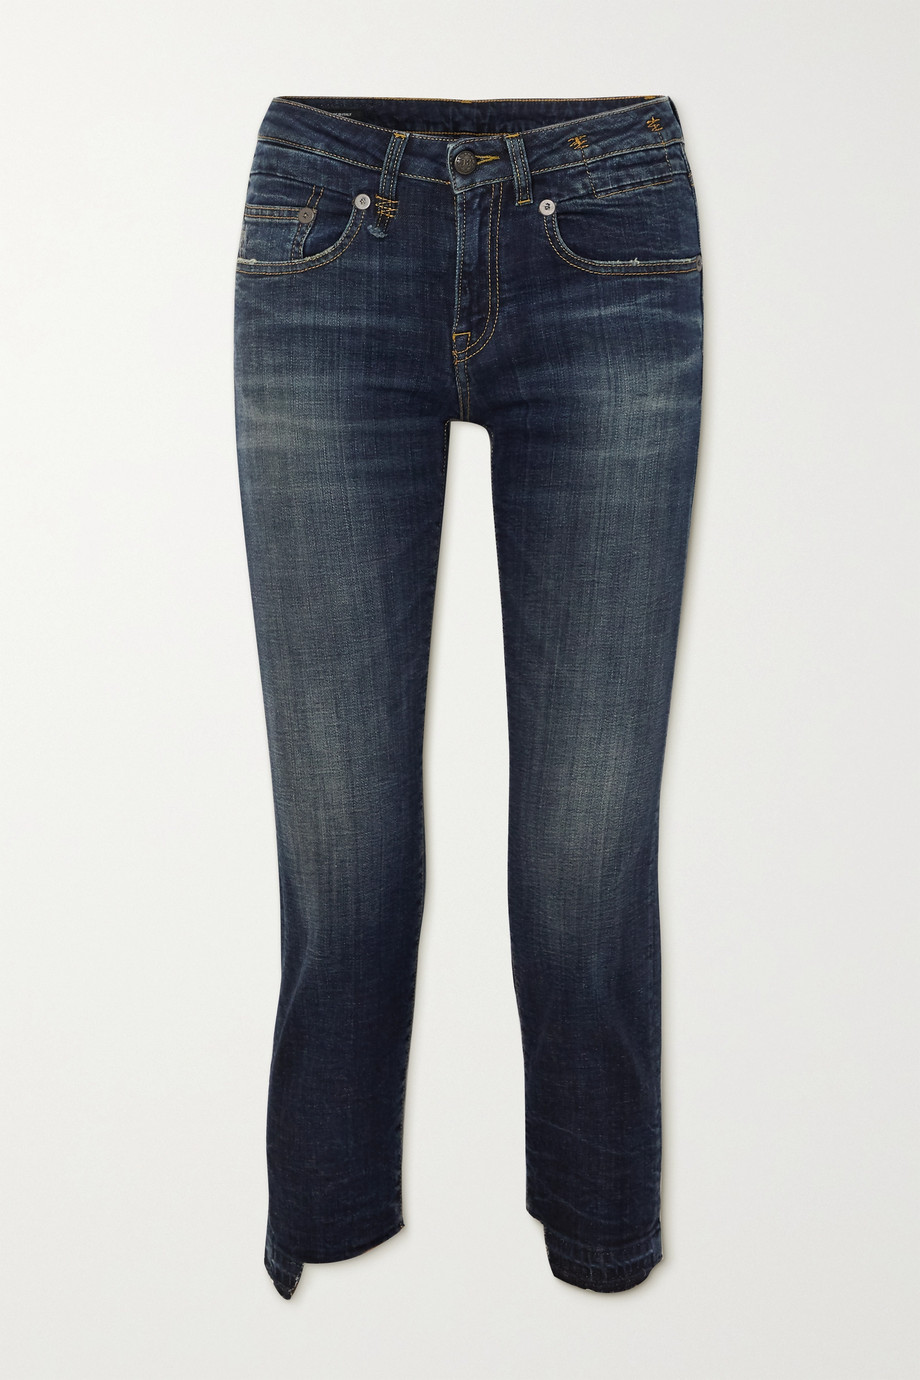 R13 Boy Straight frayed mid-rise jeans